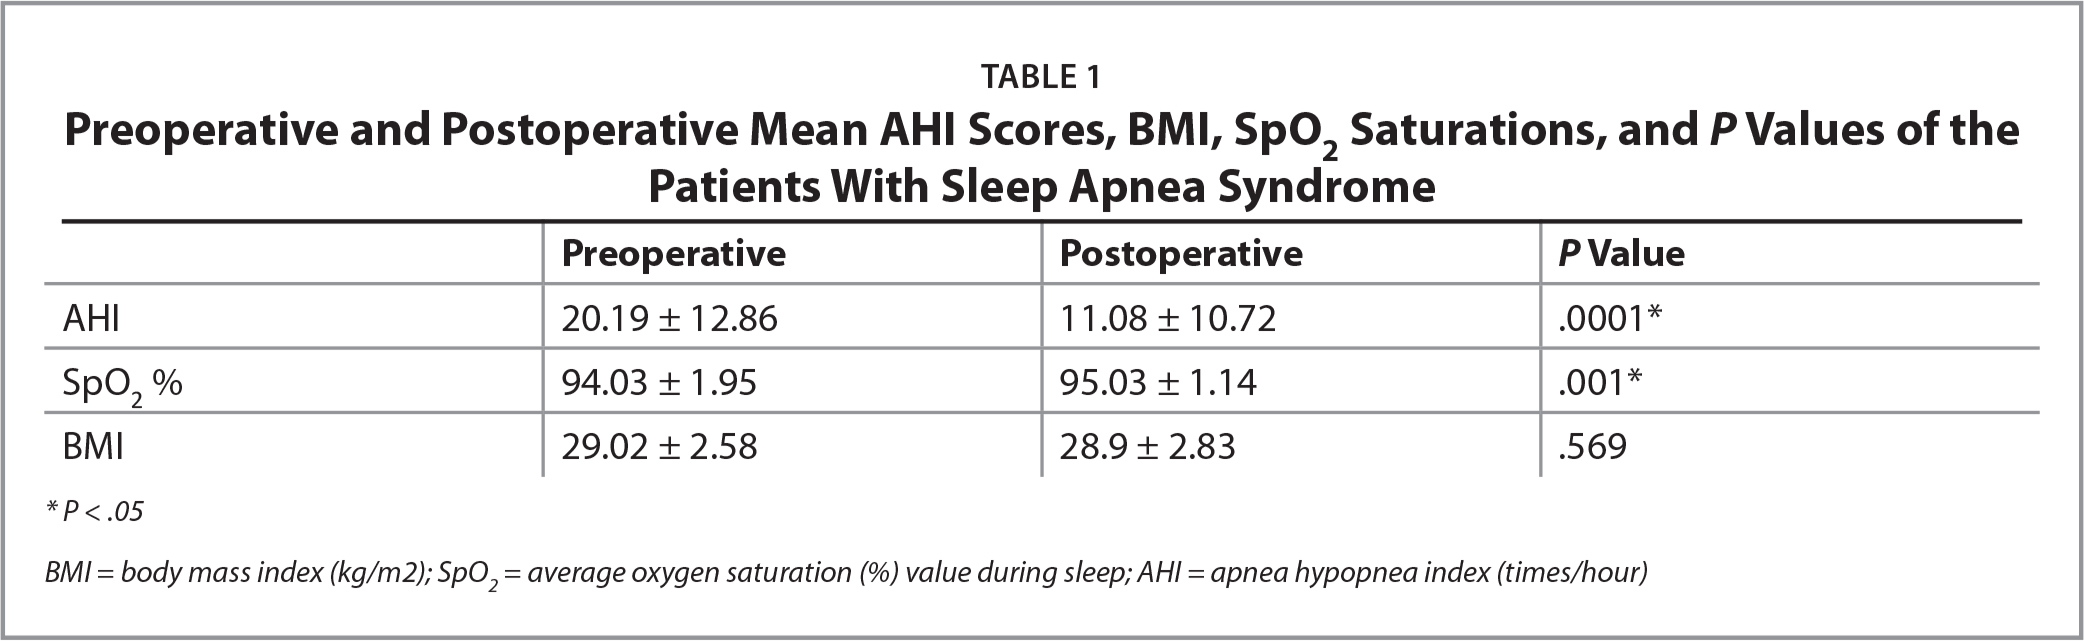 Preoperative and Postoperative Mean AHI Scores, BMI, SpO2 Saturations, and P Values of the Patients With Sleep Apnea Syndrome